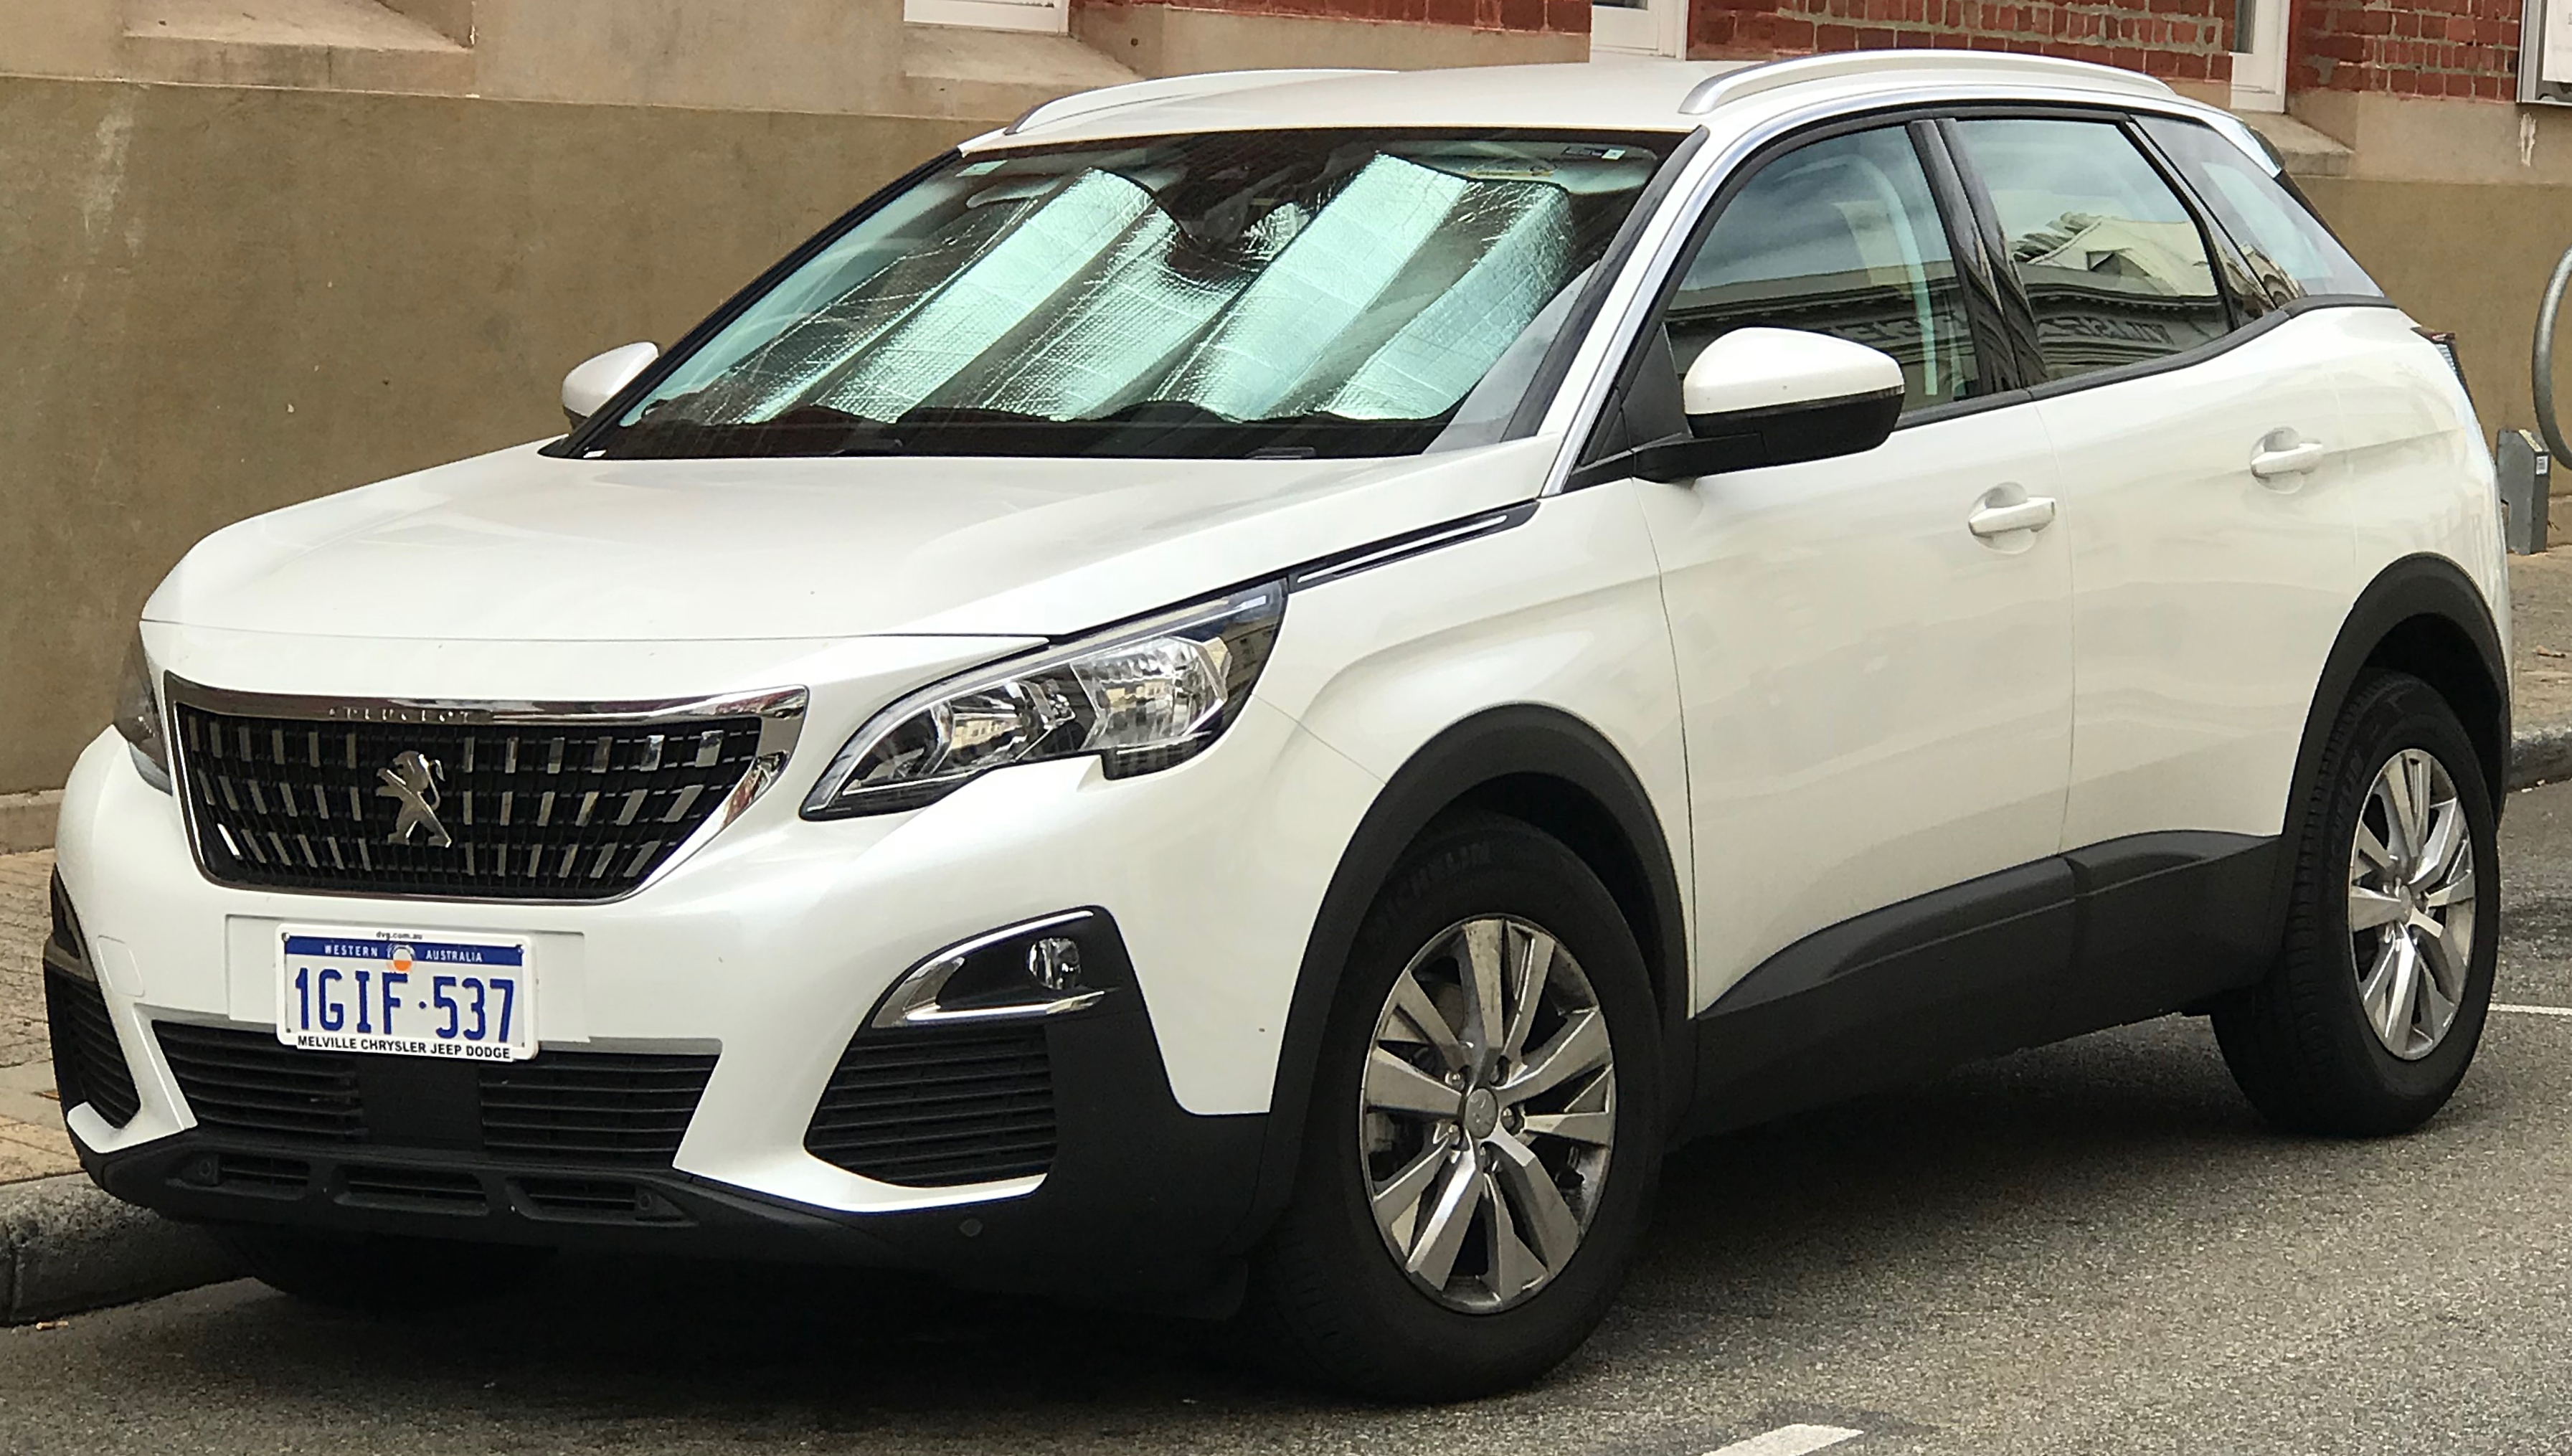 file 2017 peugeot 3008 p84 my18 active wagon 2018 03 13 wikimedia commons. Black Bedroom Furniture Sets. Home Design Ideas